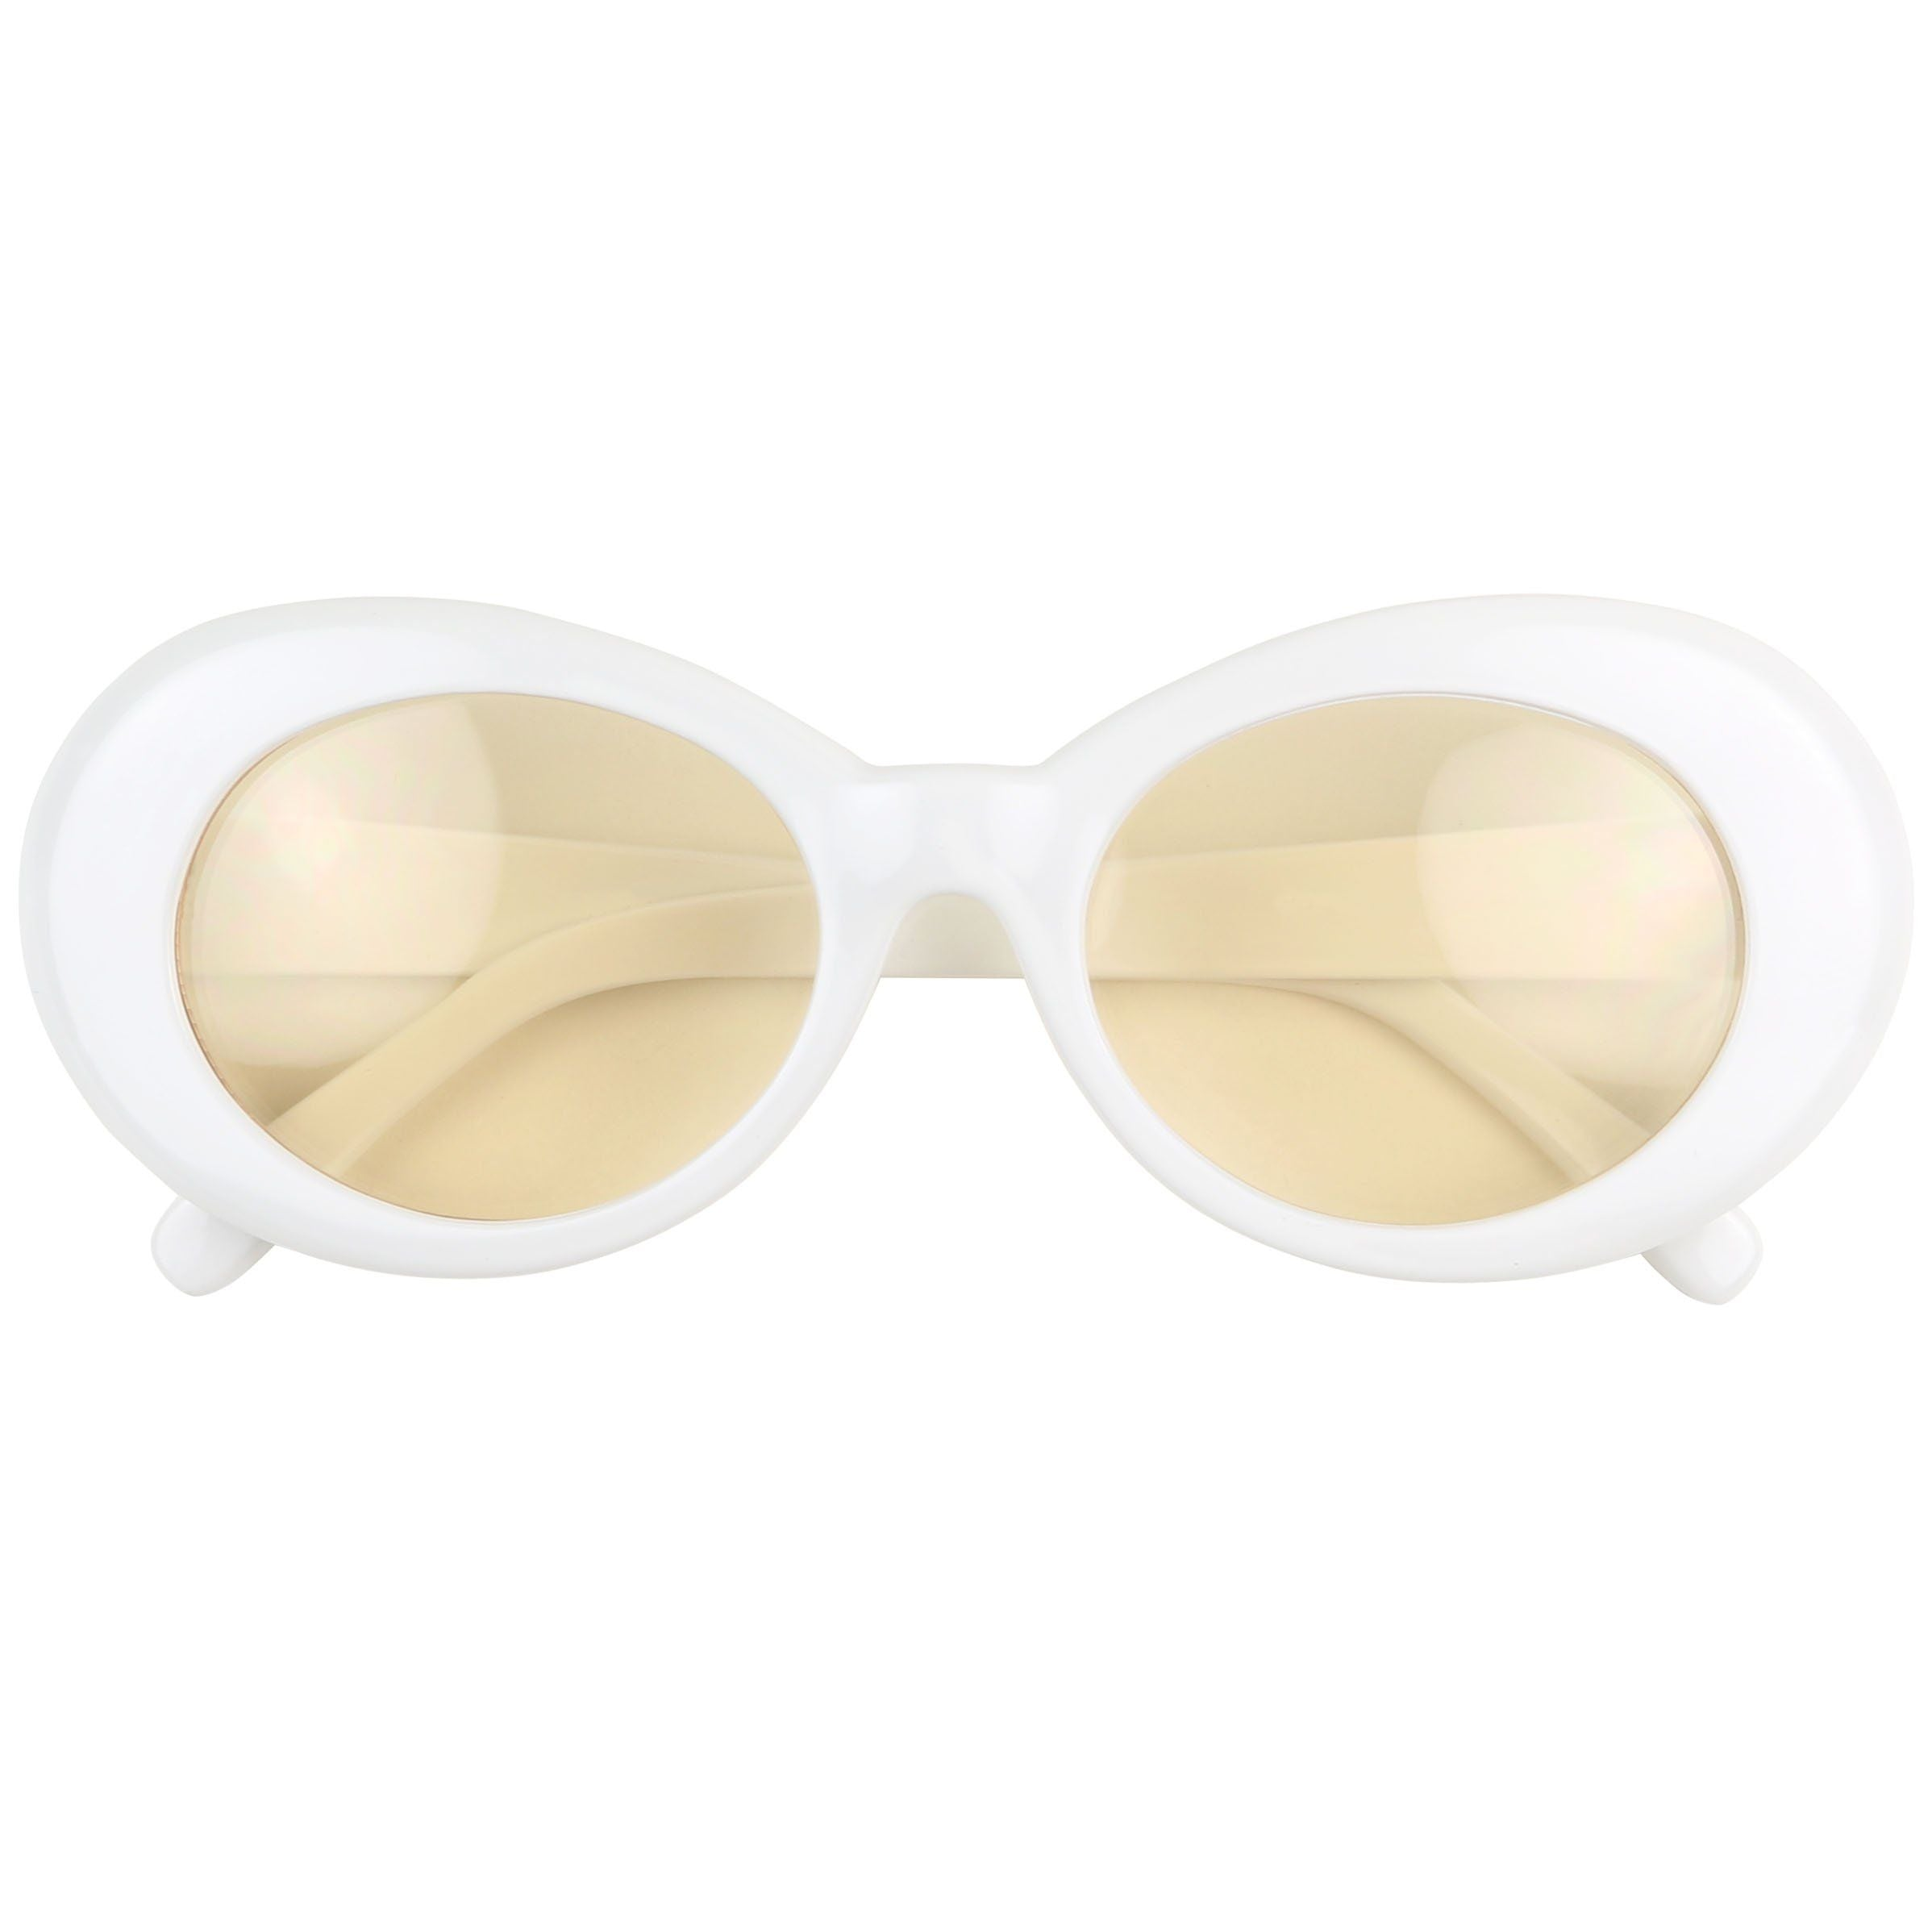 970f89d7913 KANDI Oval Retro Sunglasses - ShadyVEU ...